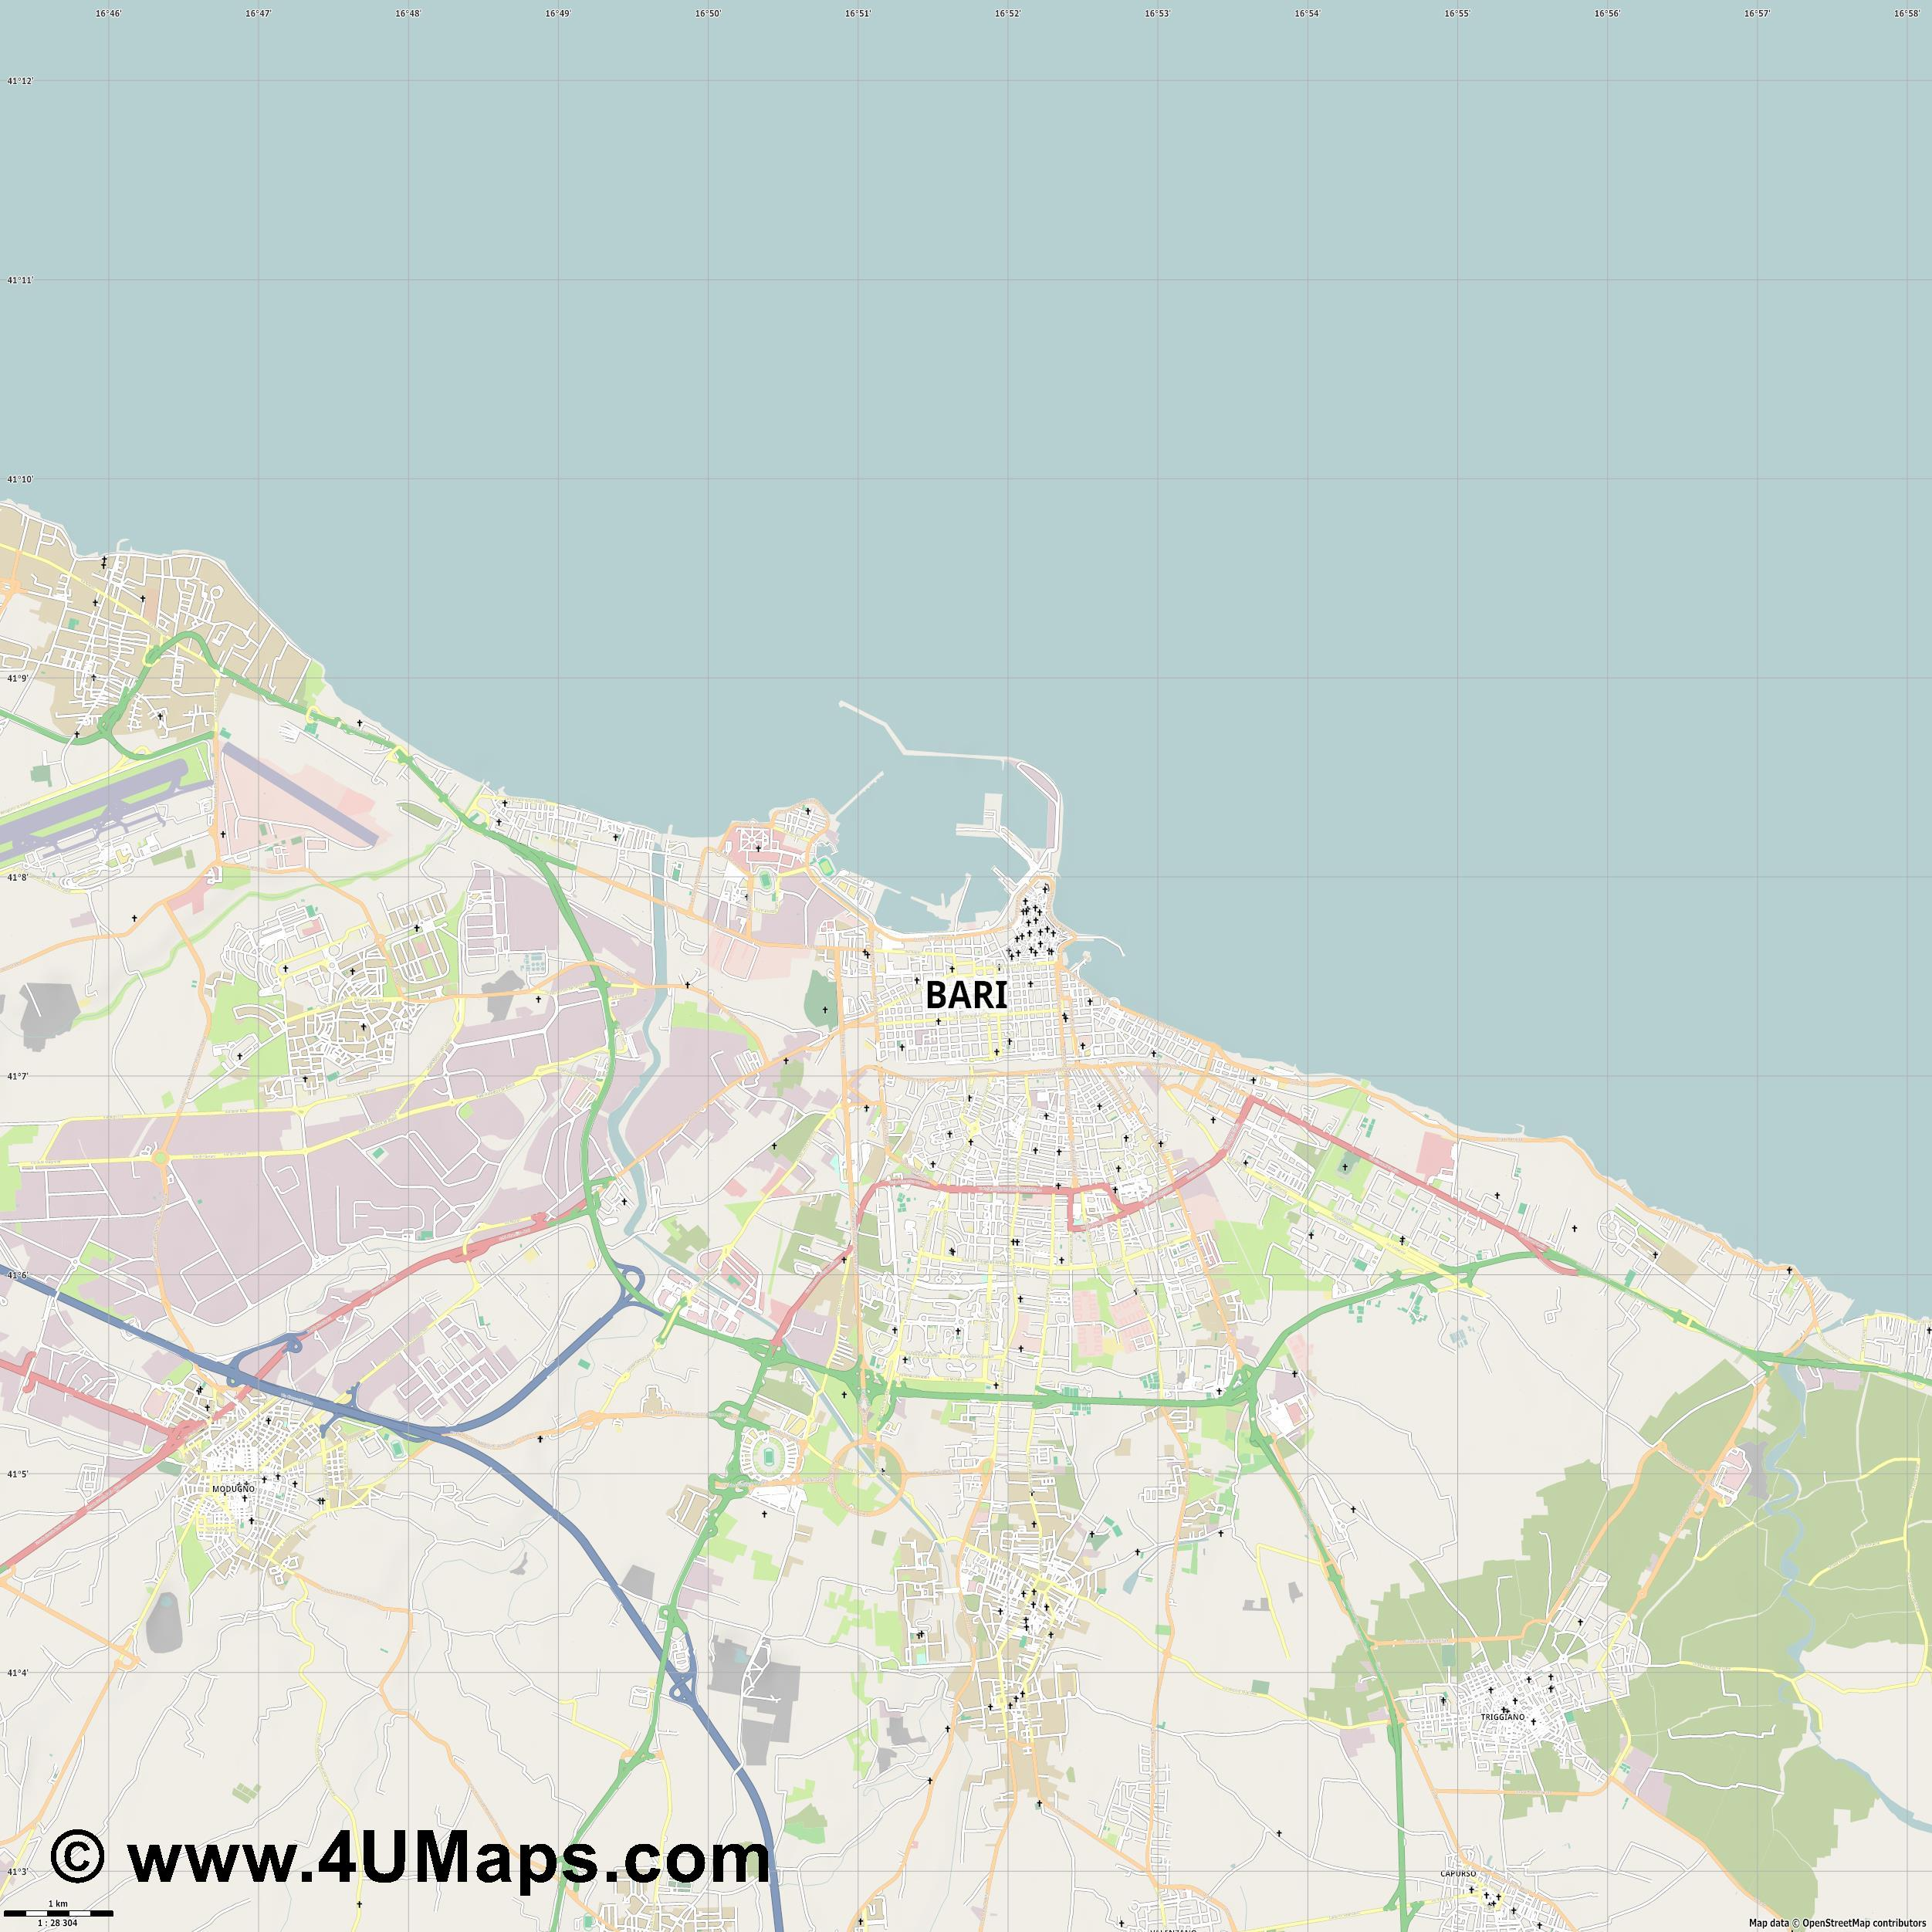 Bari  jpg high detail, large area preview vector city map